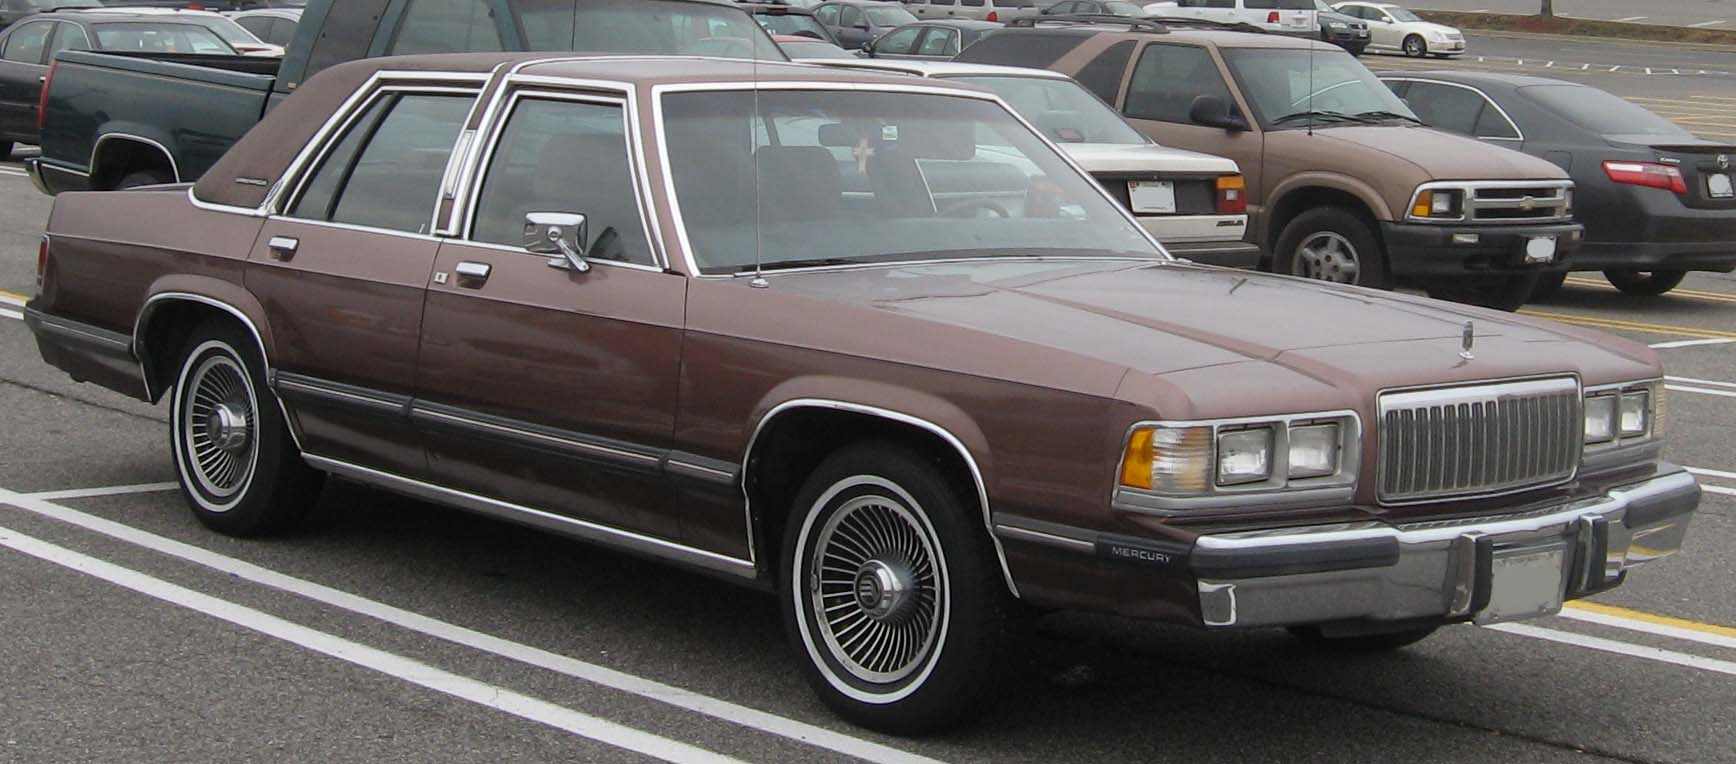 1988 mercury grand marquis information and photos momentcar. Black Bedroom Furniture Sets. Home Design Ideas